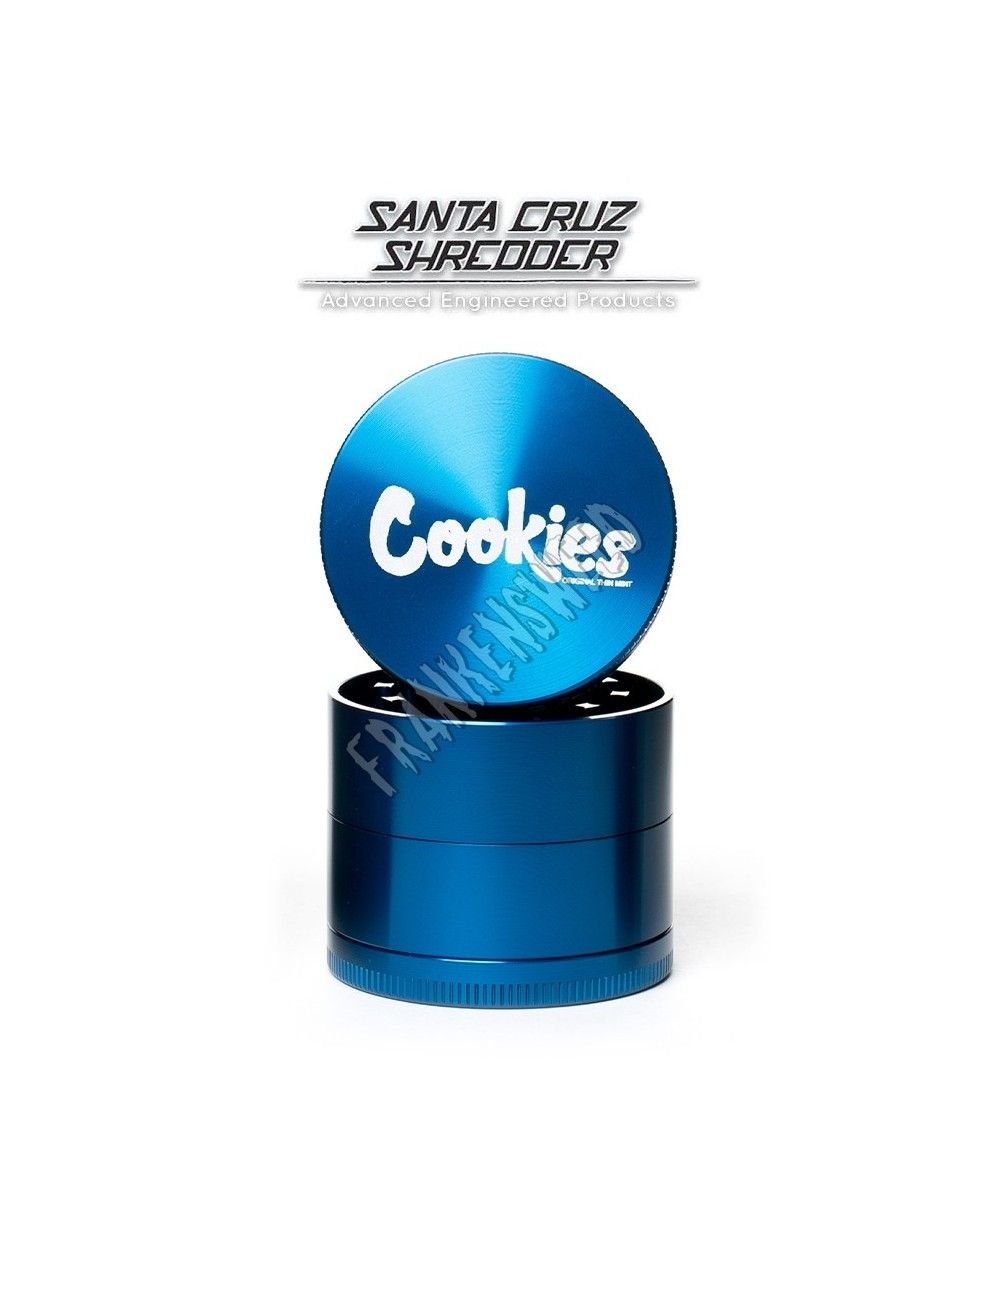 Santa Cruz Shredder 4-piece Medium - Blue Cookies